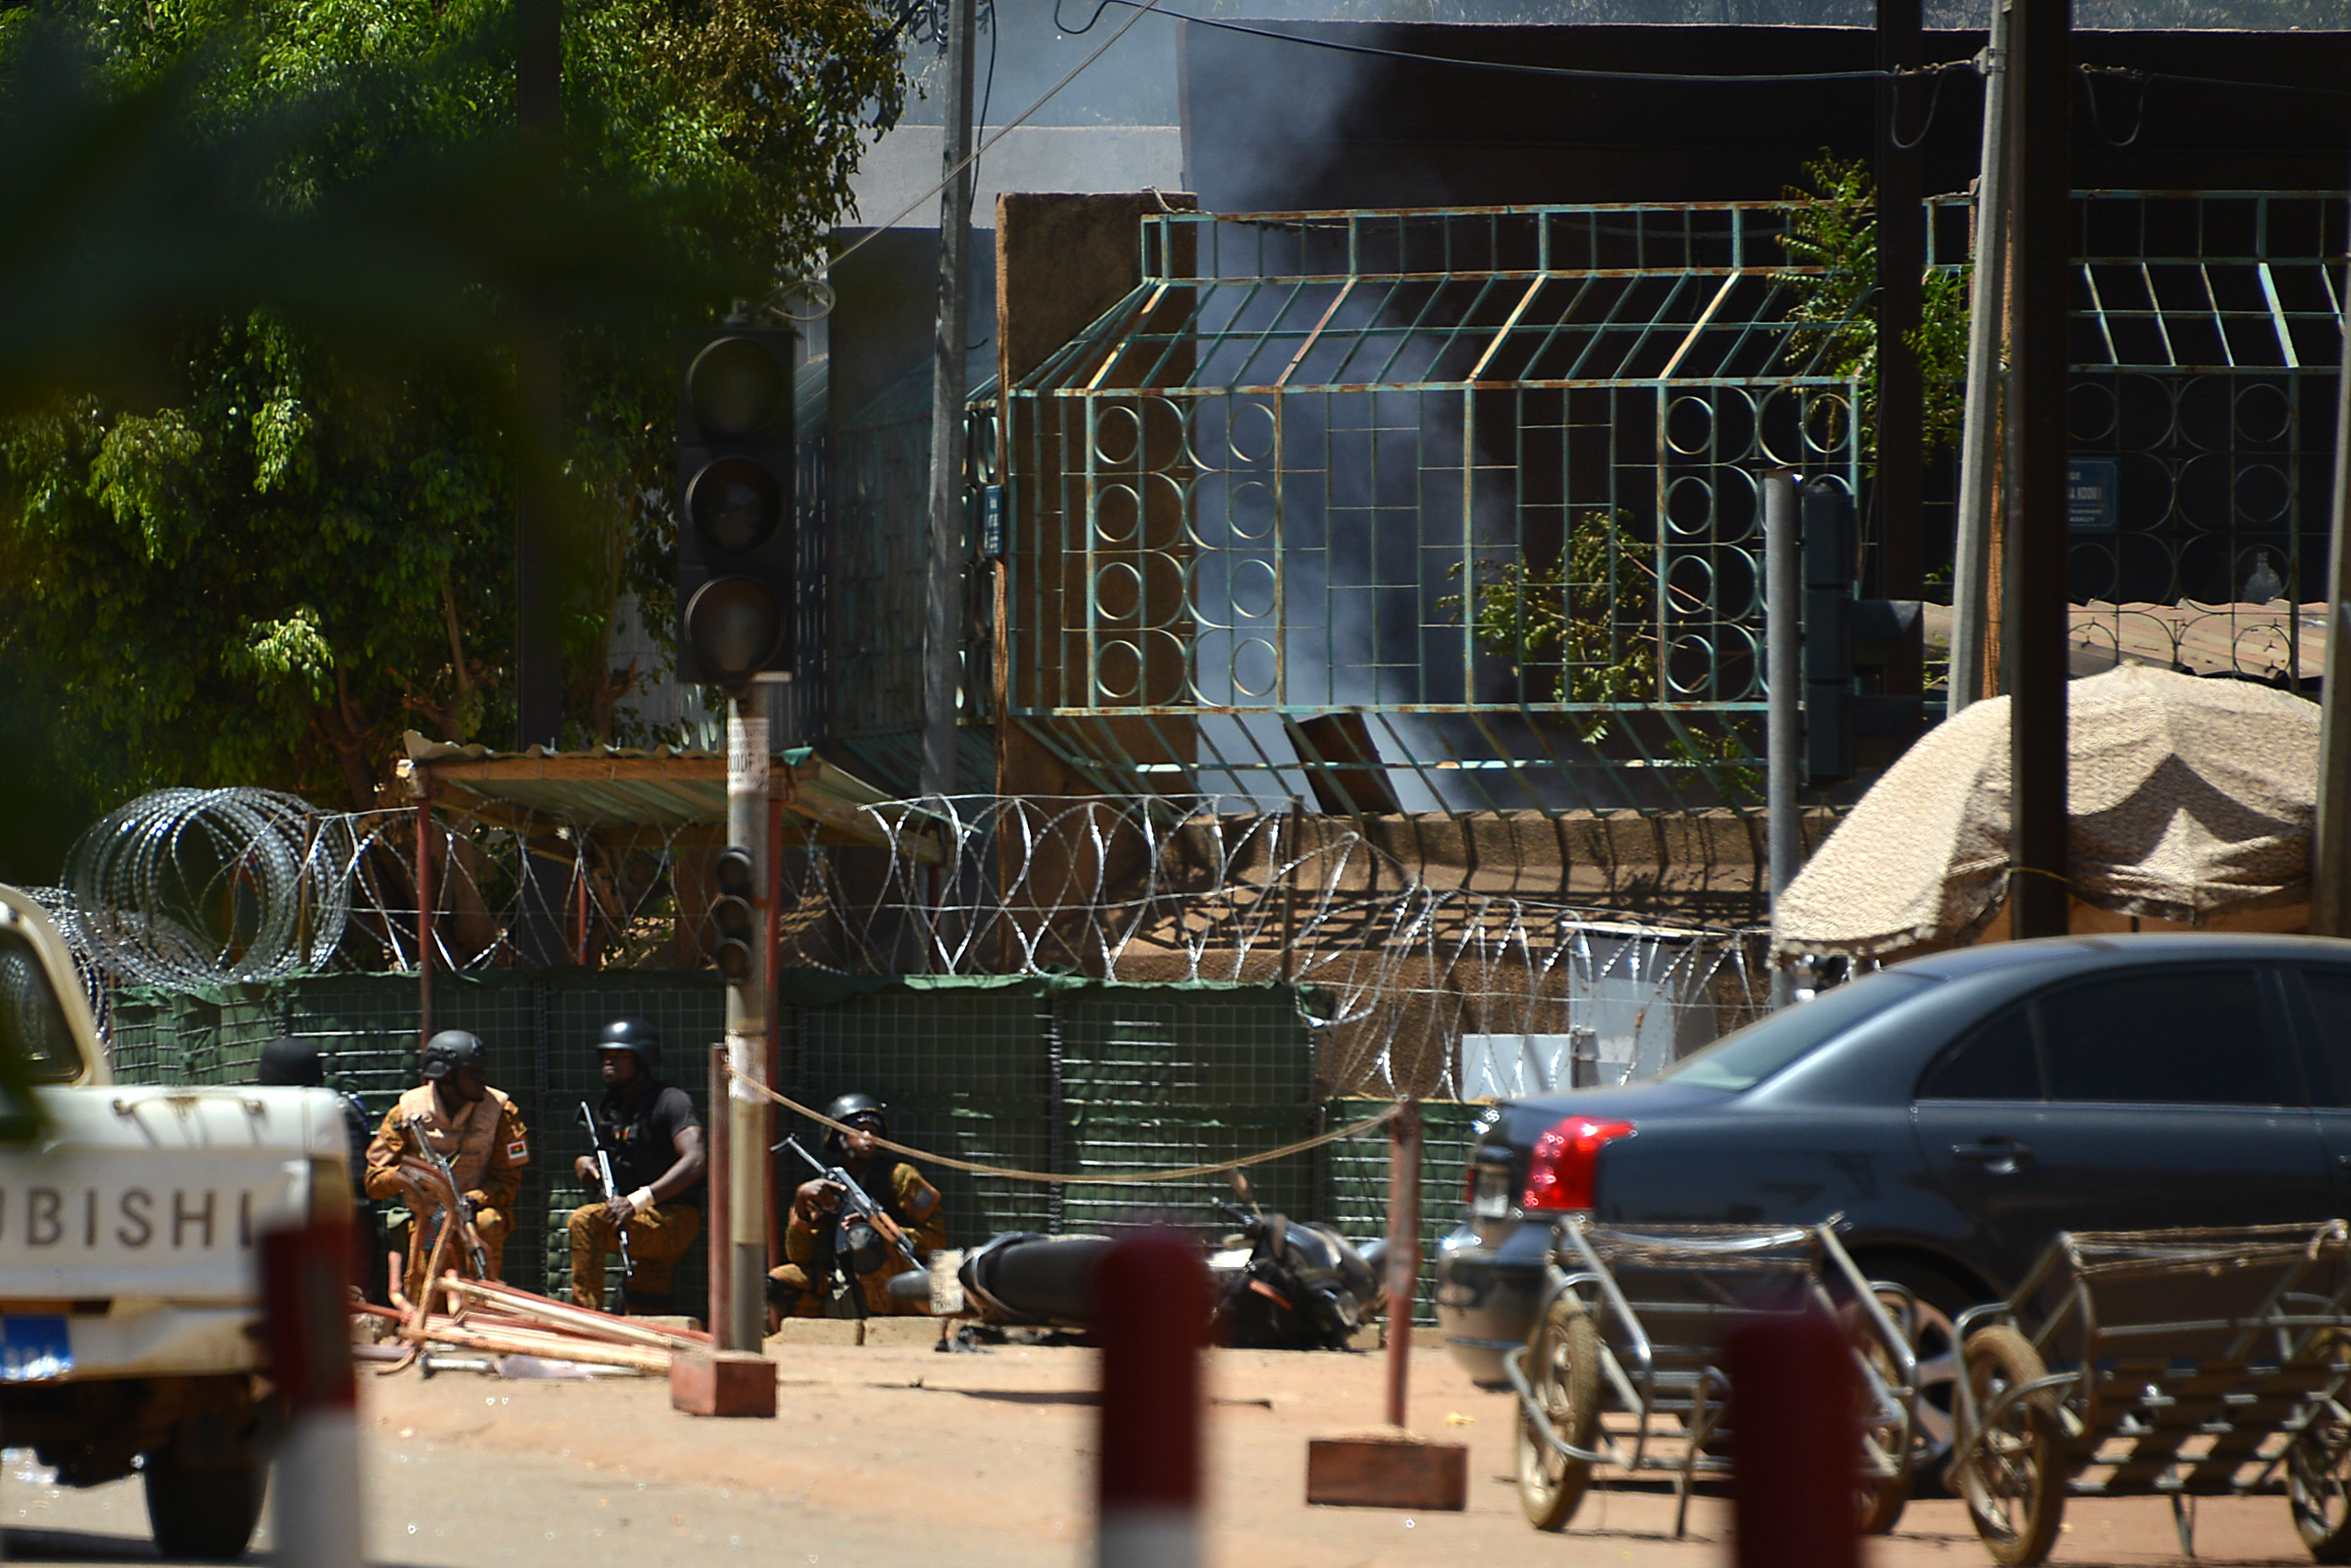 Security personnel take cover as smoke billows from The Institute Francais in Ouagadougou on March 2, 2018, as the capital of Burkina Faso came under multiple attacks targeting the French embassy, the French cultural centre and the country's military headquarters.                 Witnesses said five armed men got out of a car and opened fire on passersby before heading towards the embassy, in the centre of the city. Other witnesses said there was an explosion near the headquarters of the Burkinabe armed forces and the French cultural centre, which are located about a kilometre (half a mile) from the site of the first attack.                  / AFP PHOTO / Ahmed OUOBA        (Photo credit should read AHMED OUOBA/AFP/Getty Images)